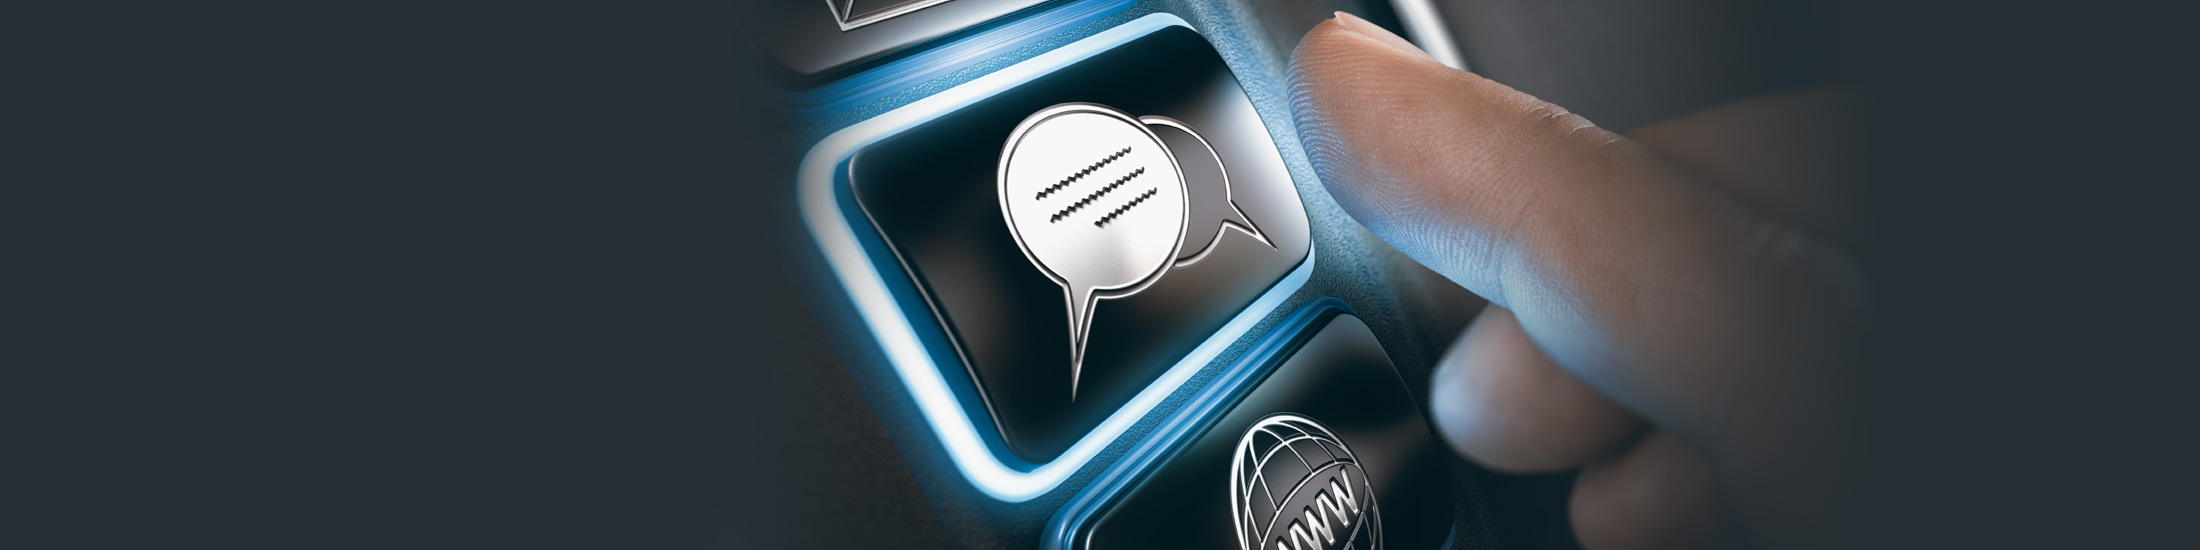 Report: Chat Commerce on the Way for Banks, Retailers